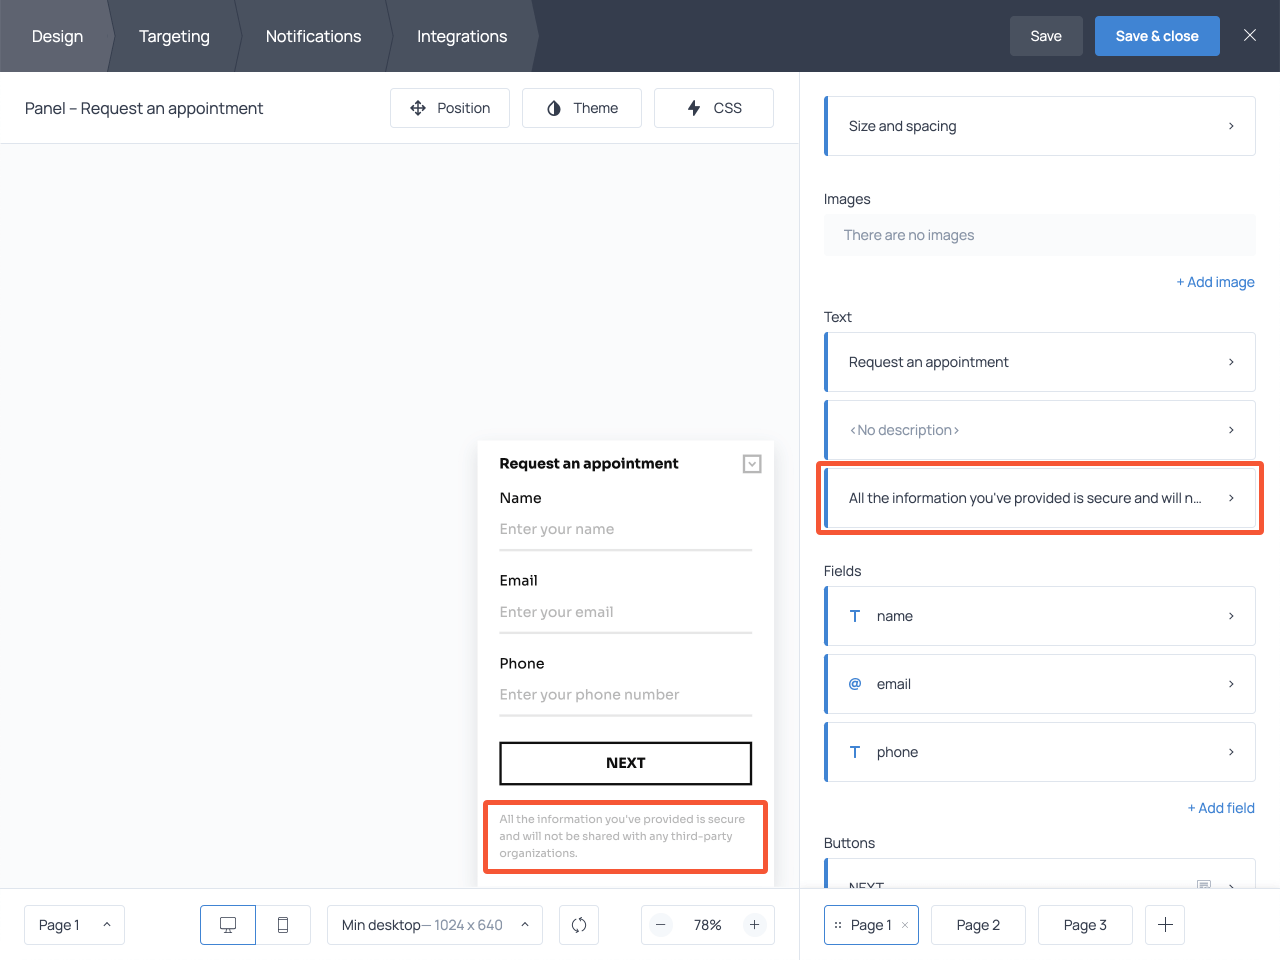 Microcopy example displayed to alleviate customer concerns